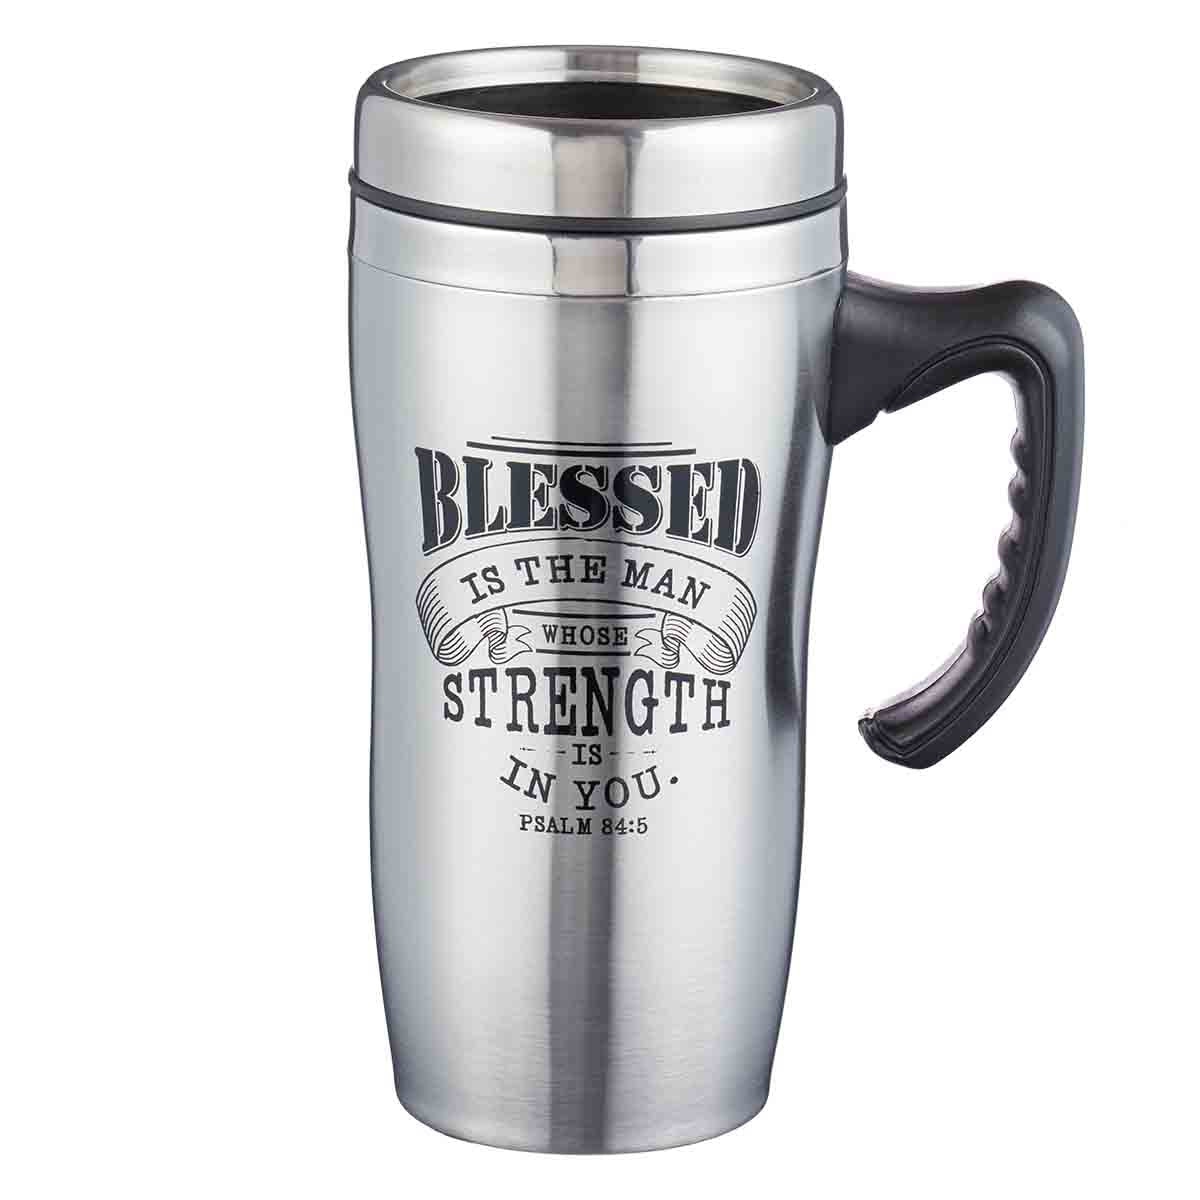 Blessed Is The Man Who's Strengh Is In You (Stainless Steel Mug)